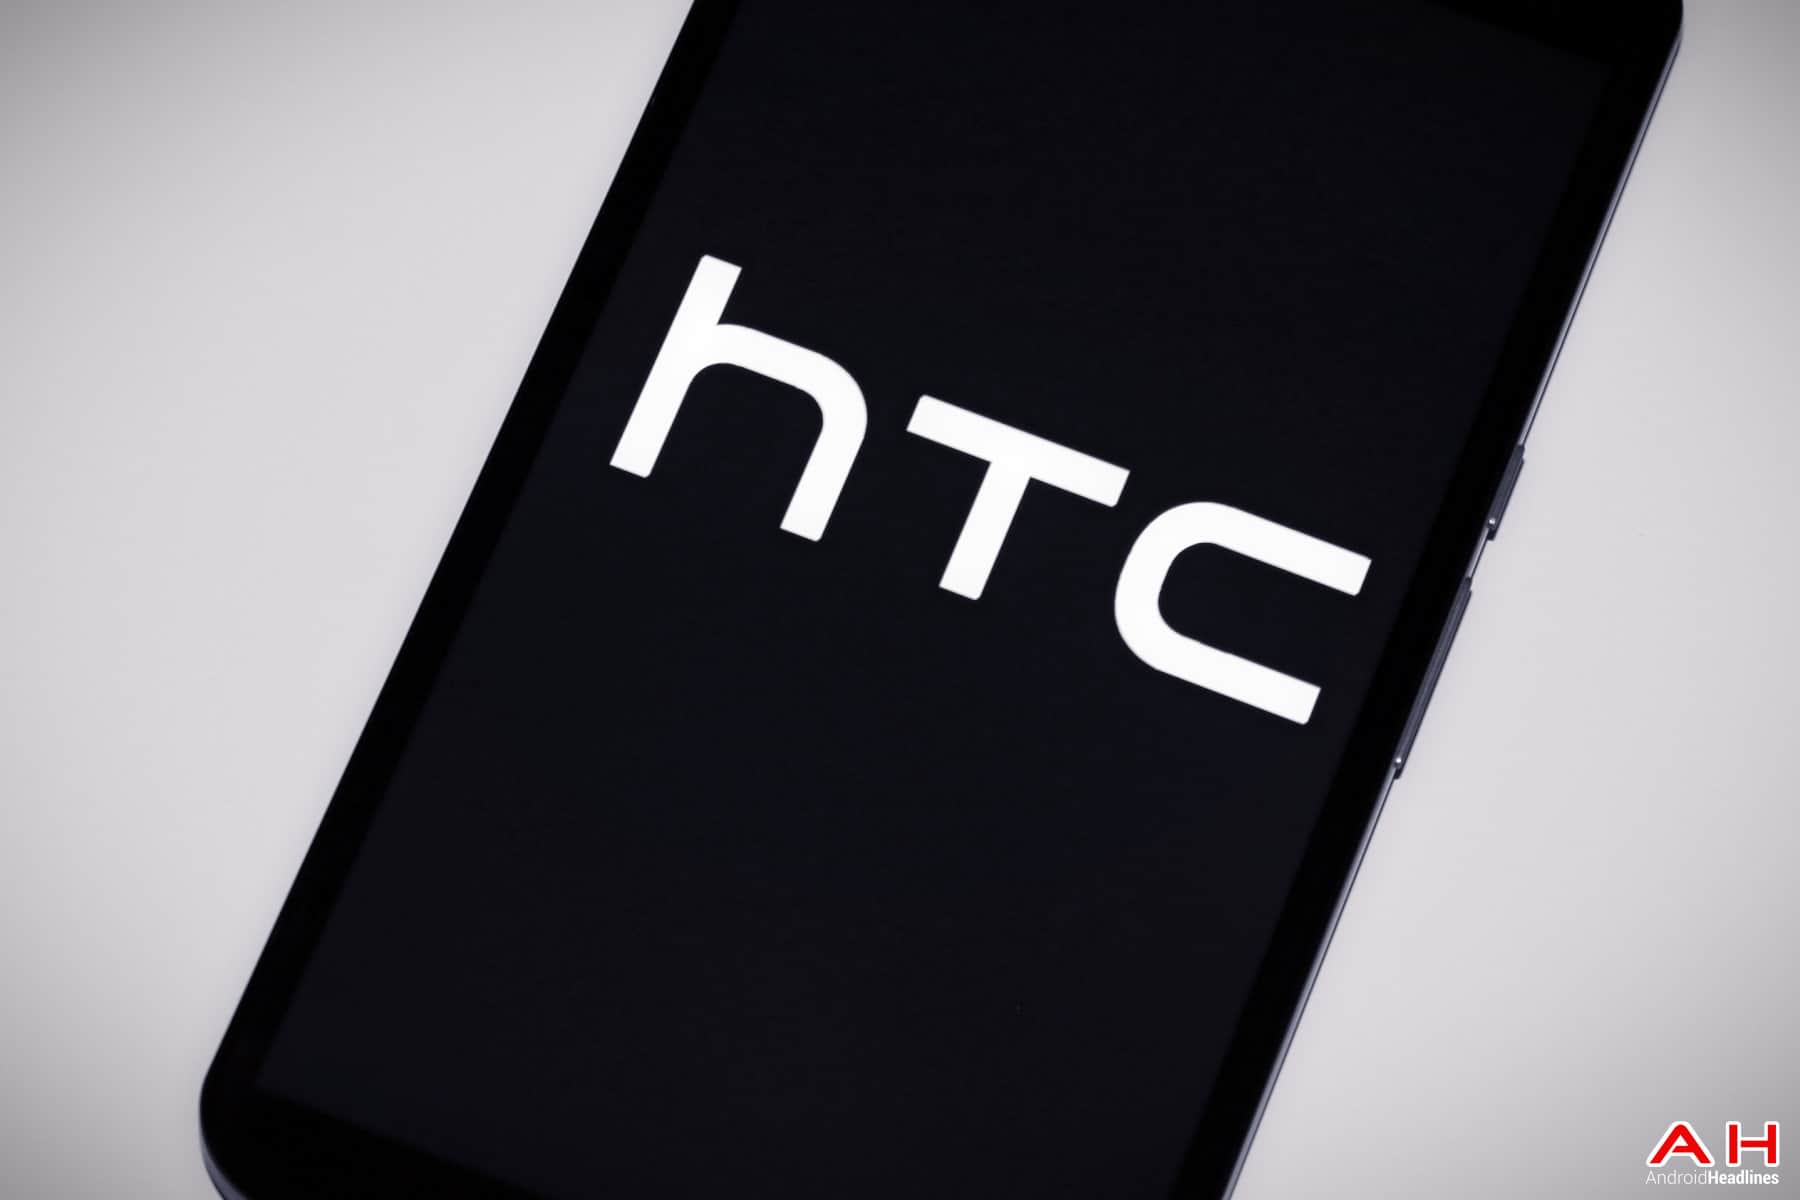 AH 2015 HTC LOGO Chris Sept-19